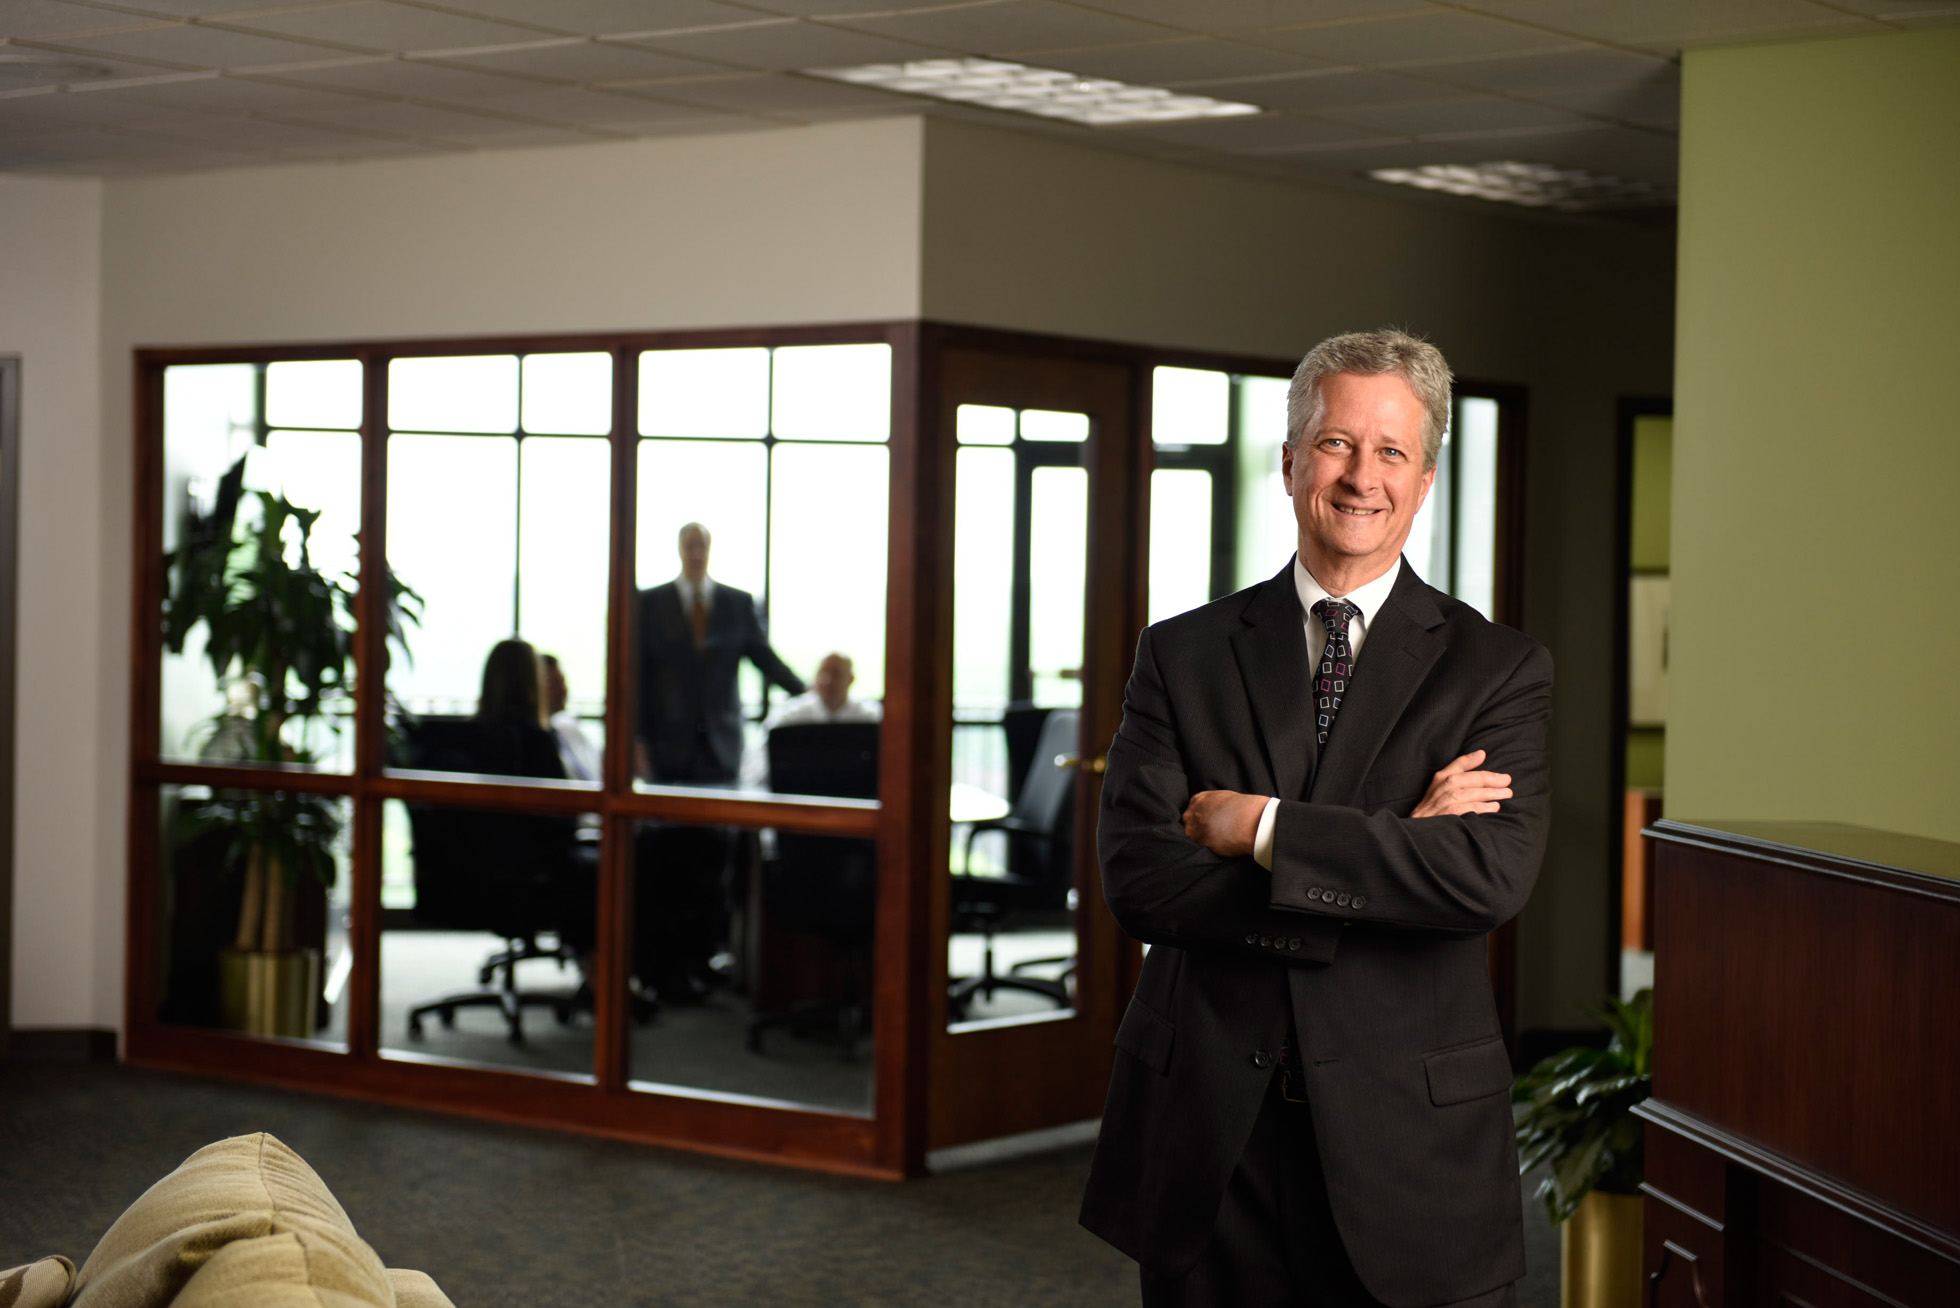 Image of man standing outside meeting room